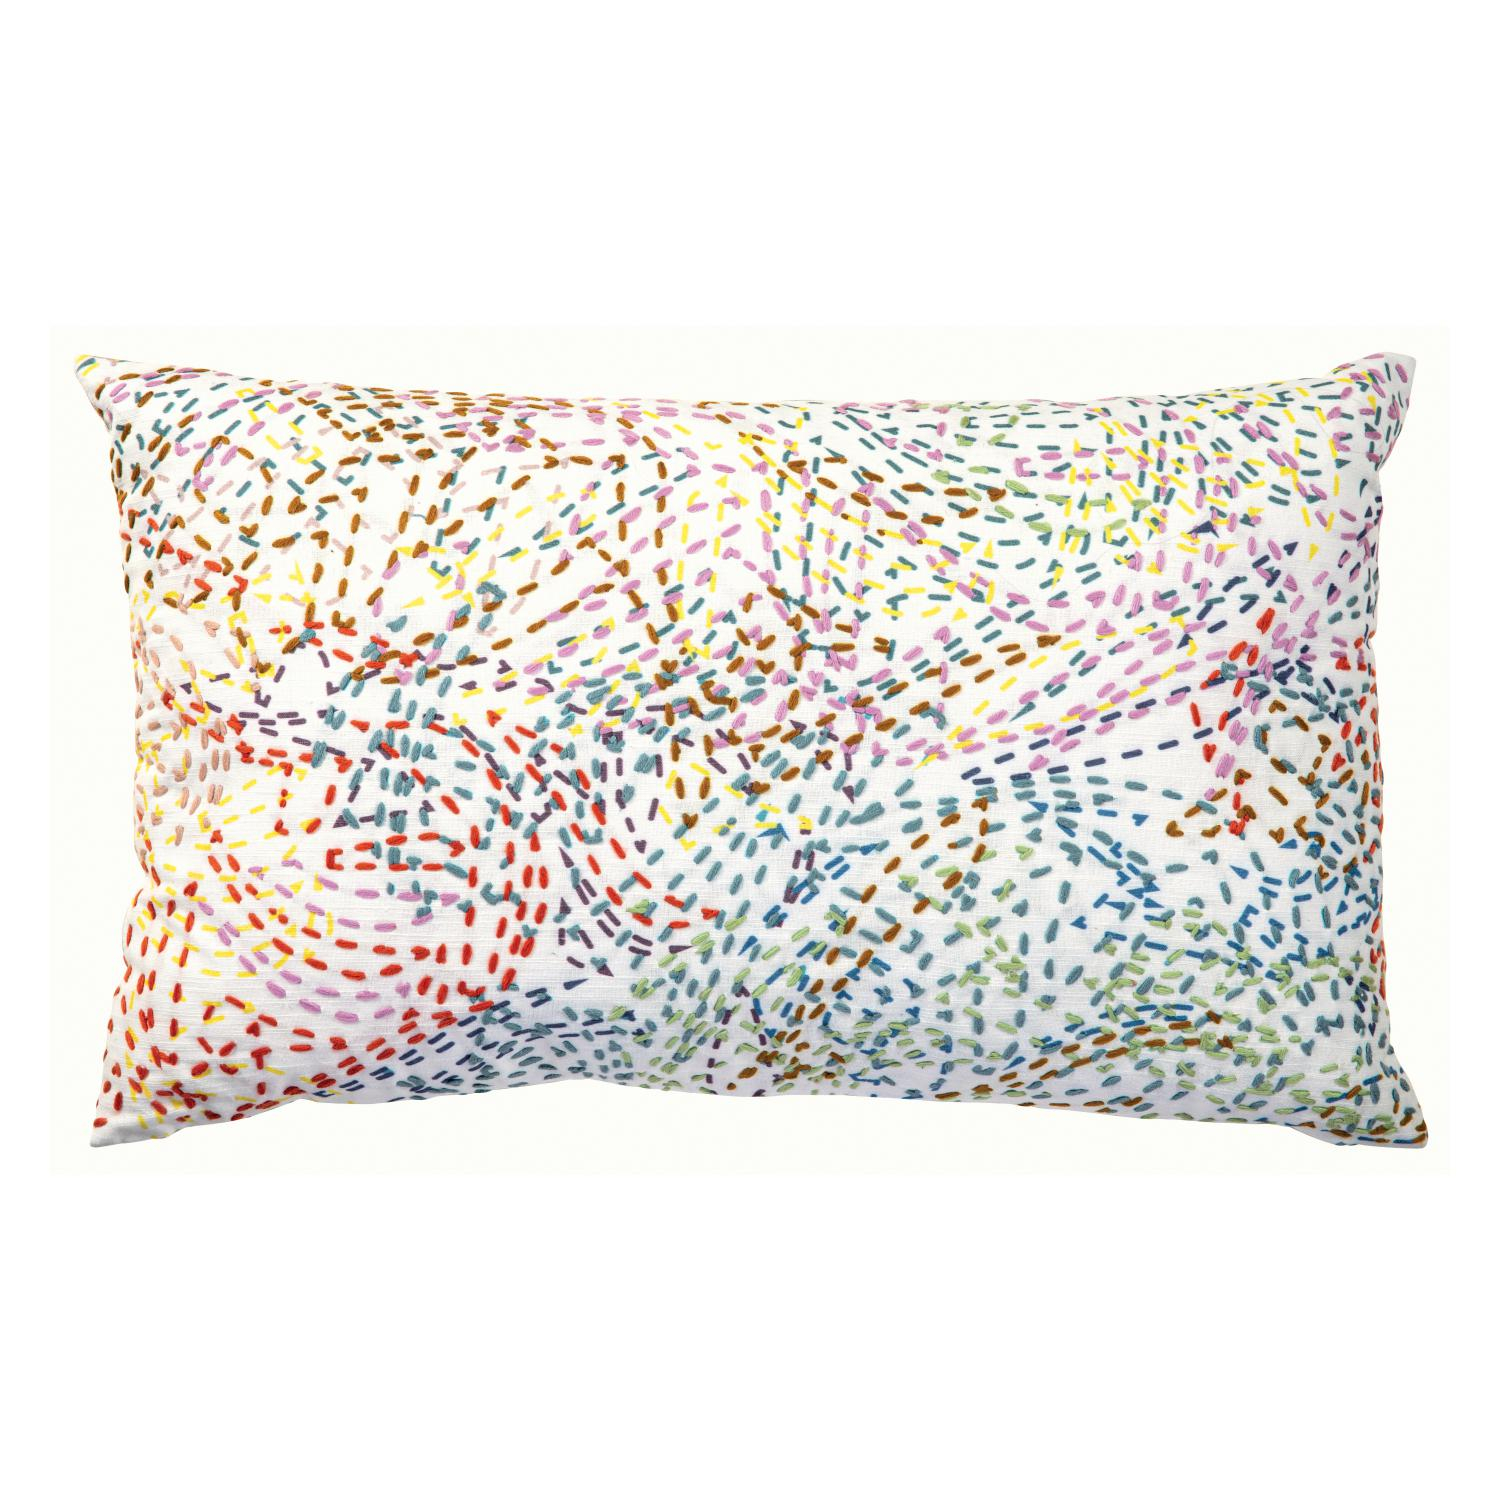 Coussin  brodé en coton multico 40 x 65 (photo)